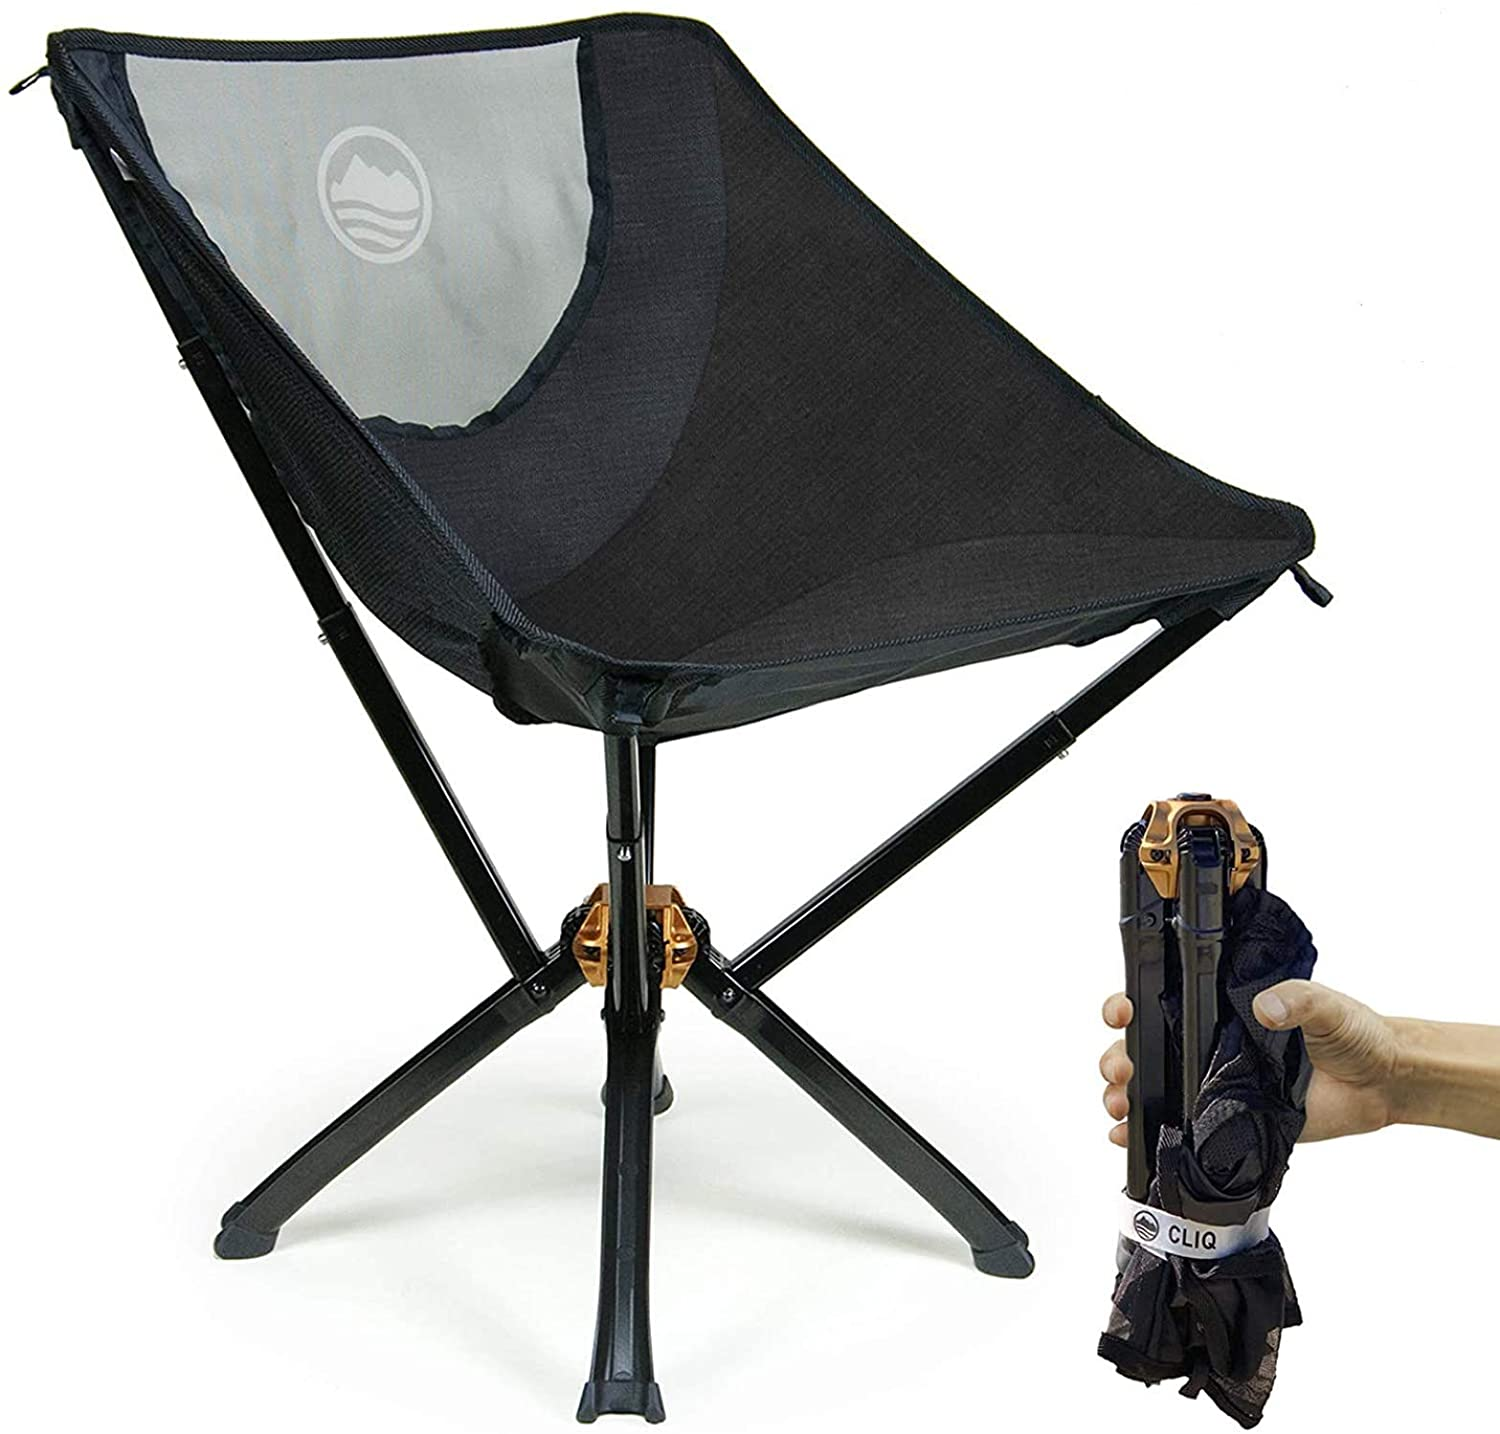 Cliq Camping Chair